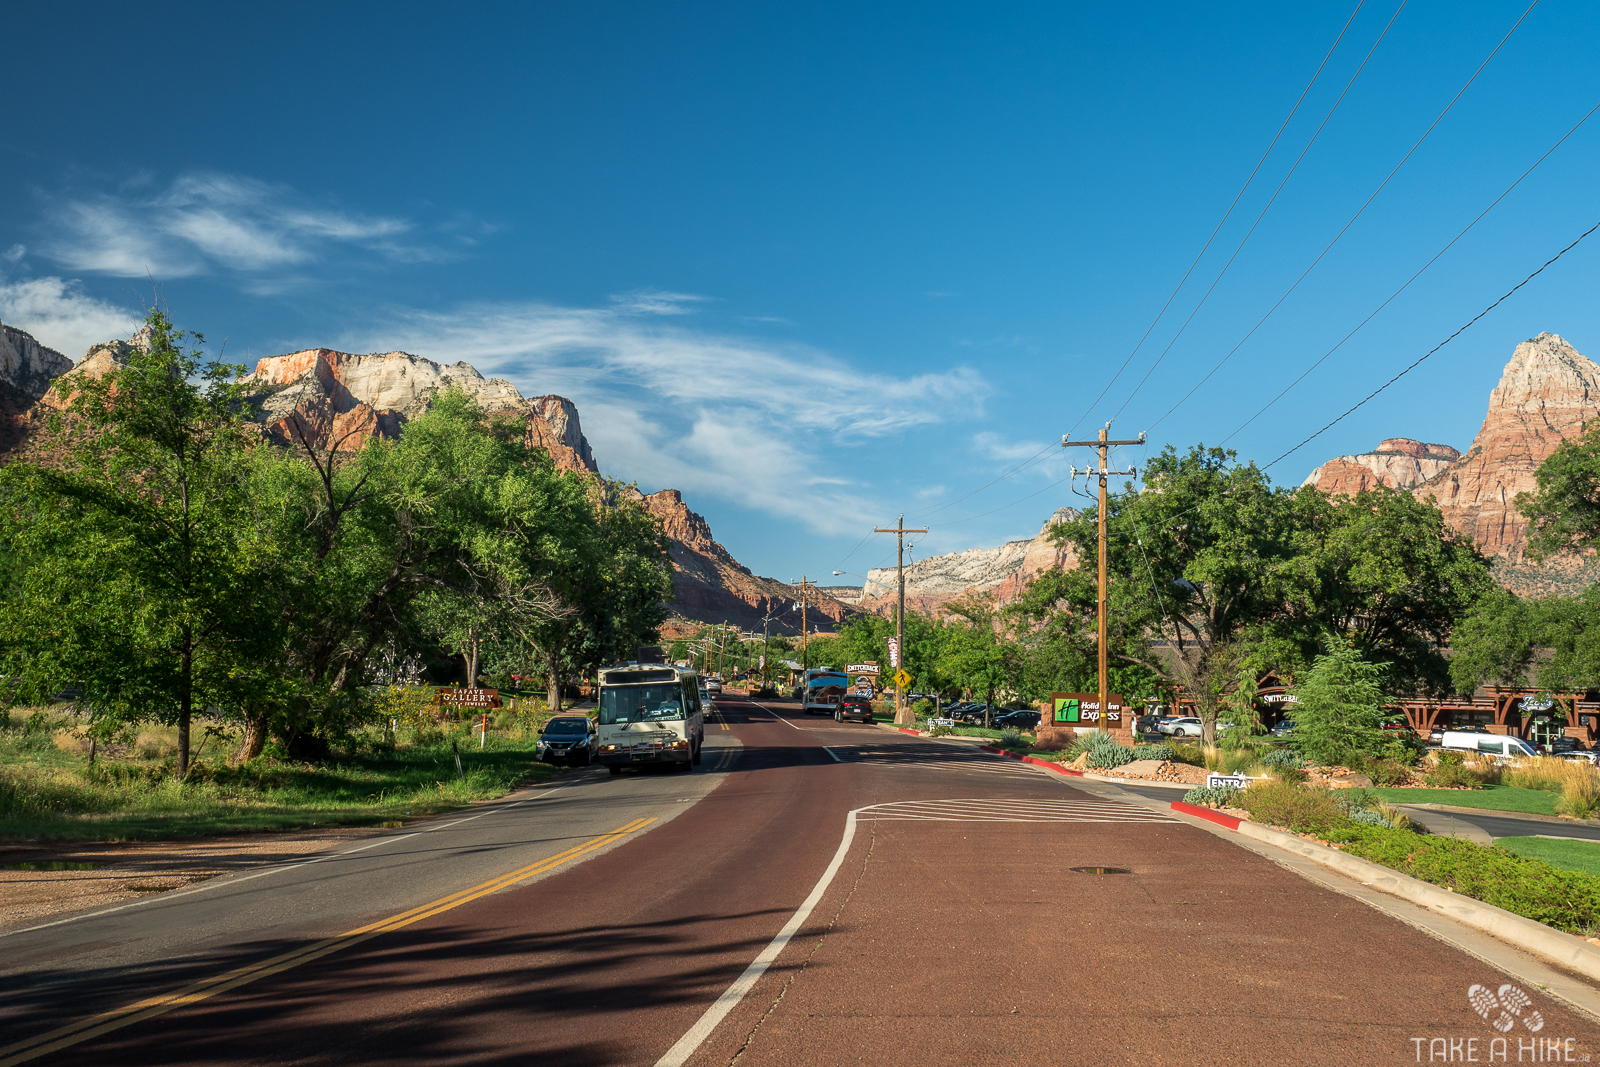 Springdale - Zion Nationalpark F8 || 1/60sek. || ISO 100 || @ 18mm